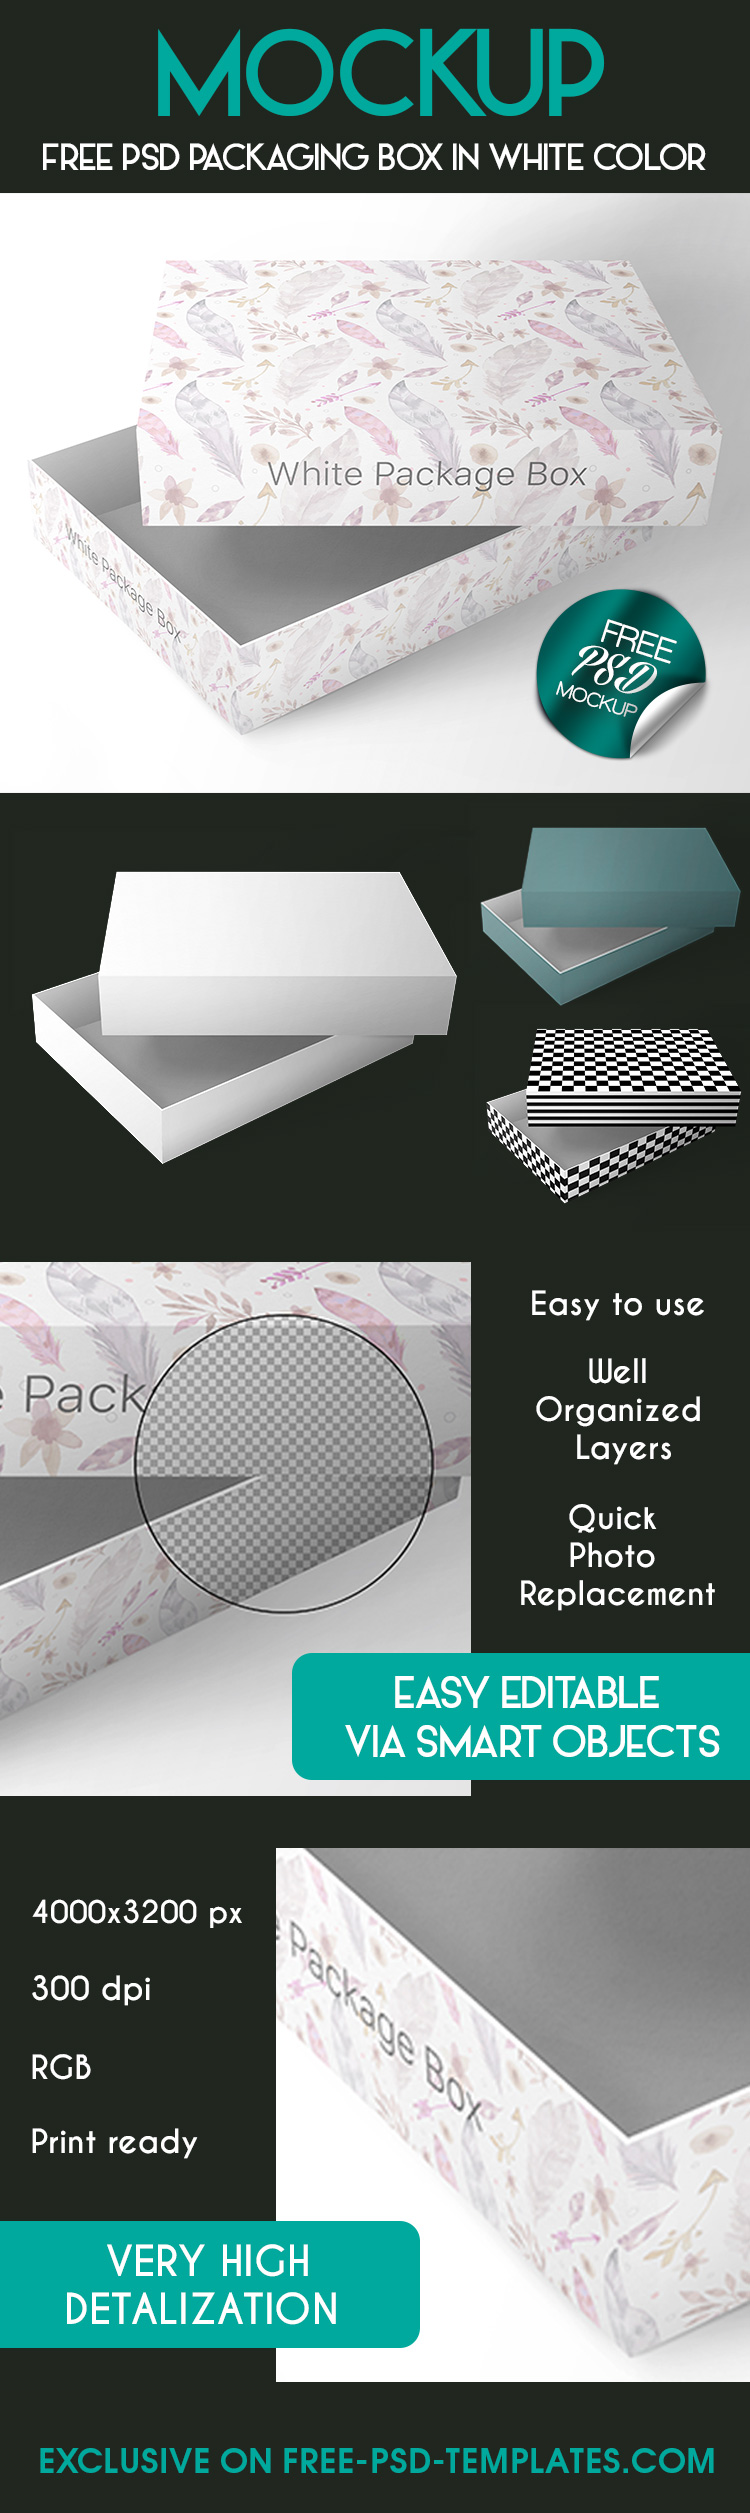 big_preview_Free_PSD_Packaging_Box_in_White_Color